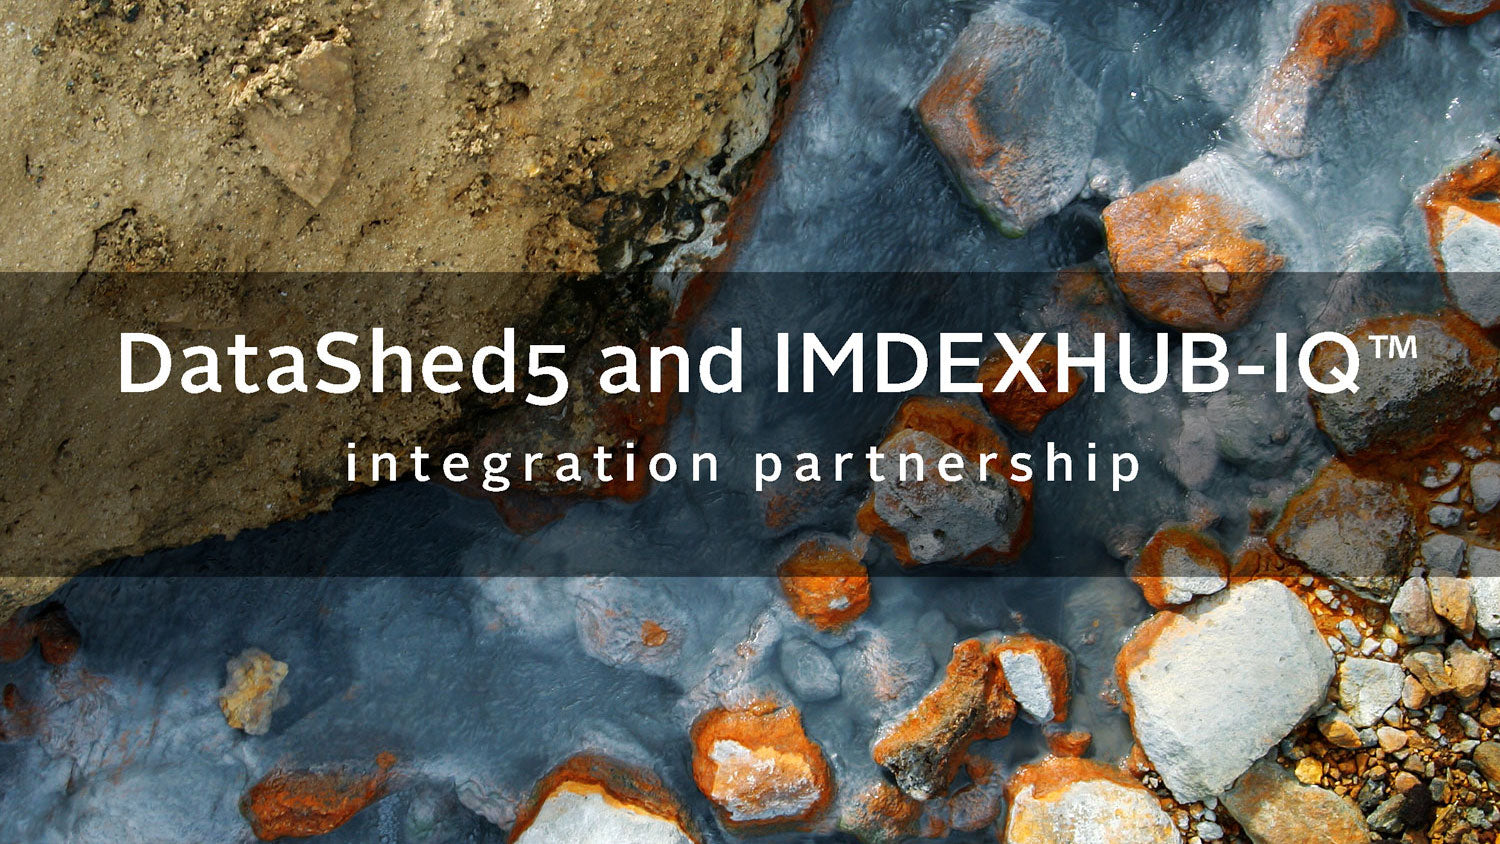 DataShed5 and IMDEXHUB-IQ™ integration partnership